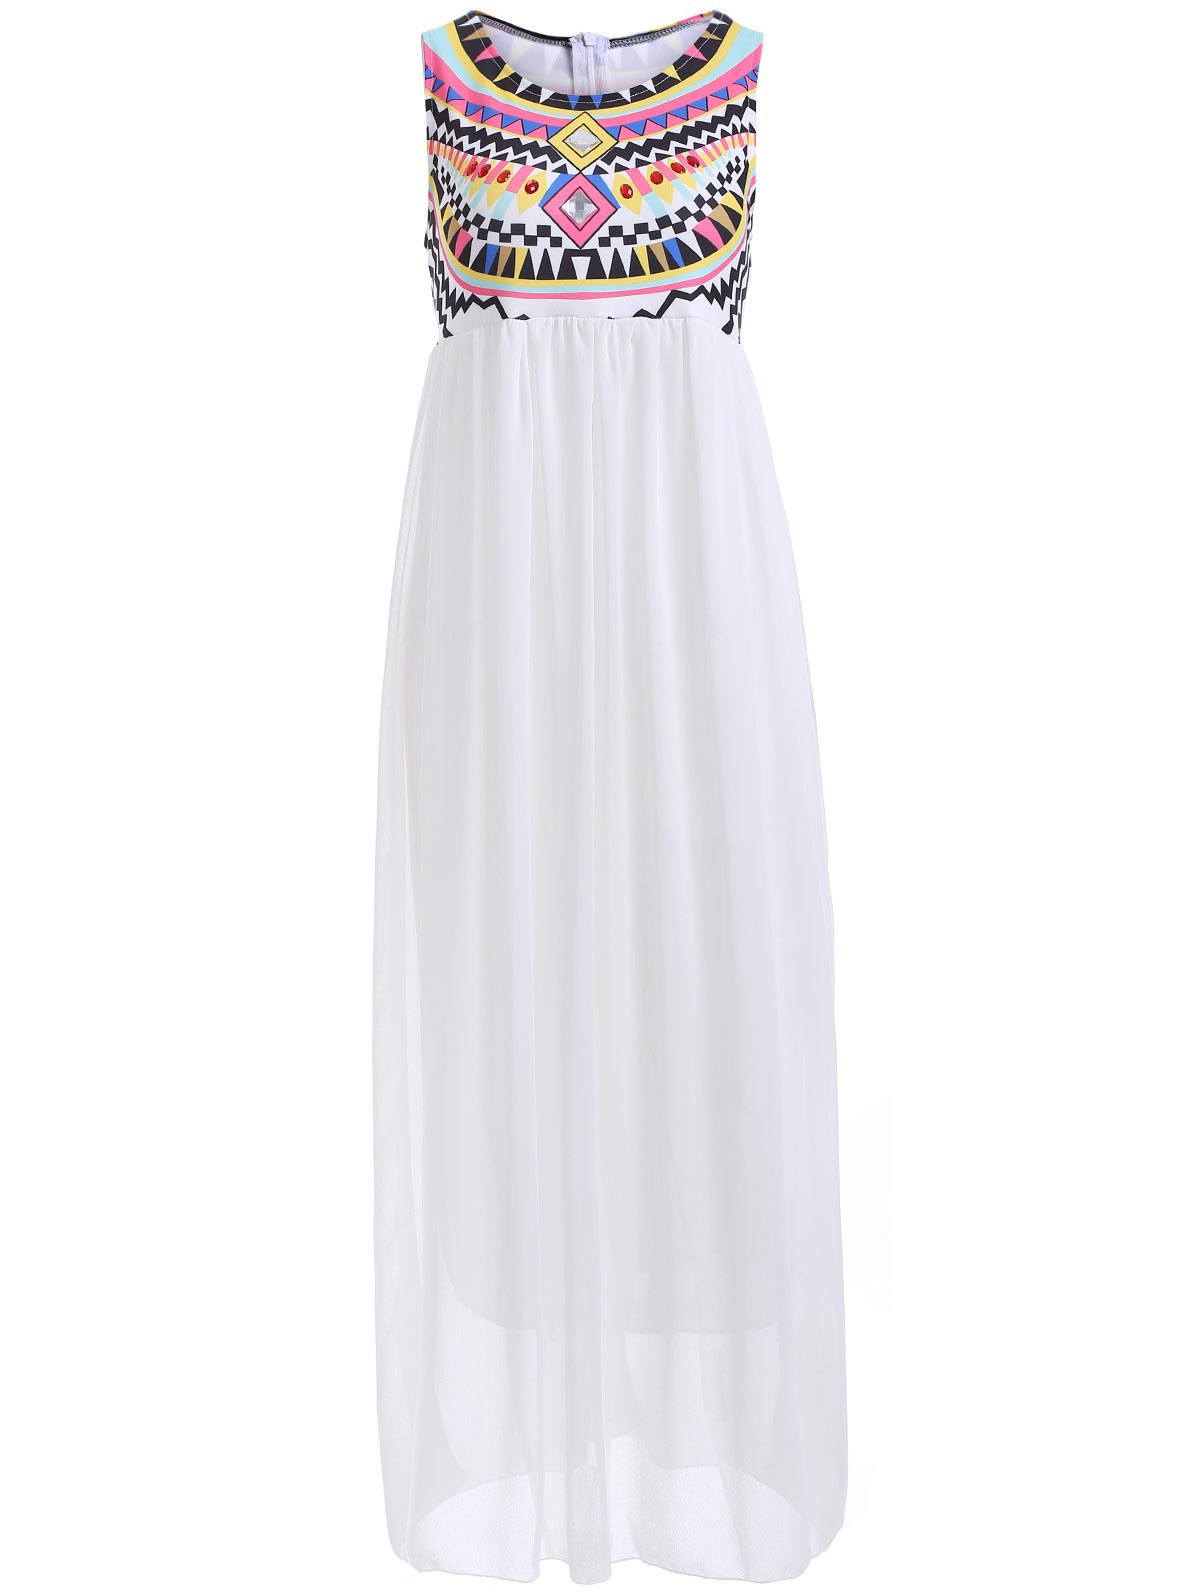 Bohemian Rhinestone Chiffon Casual Summer Maxi Dress - WHITE S